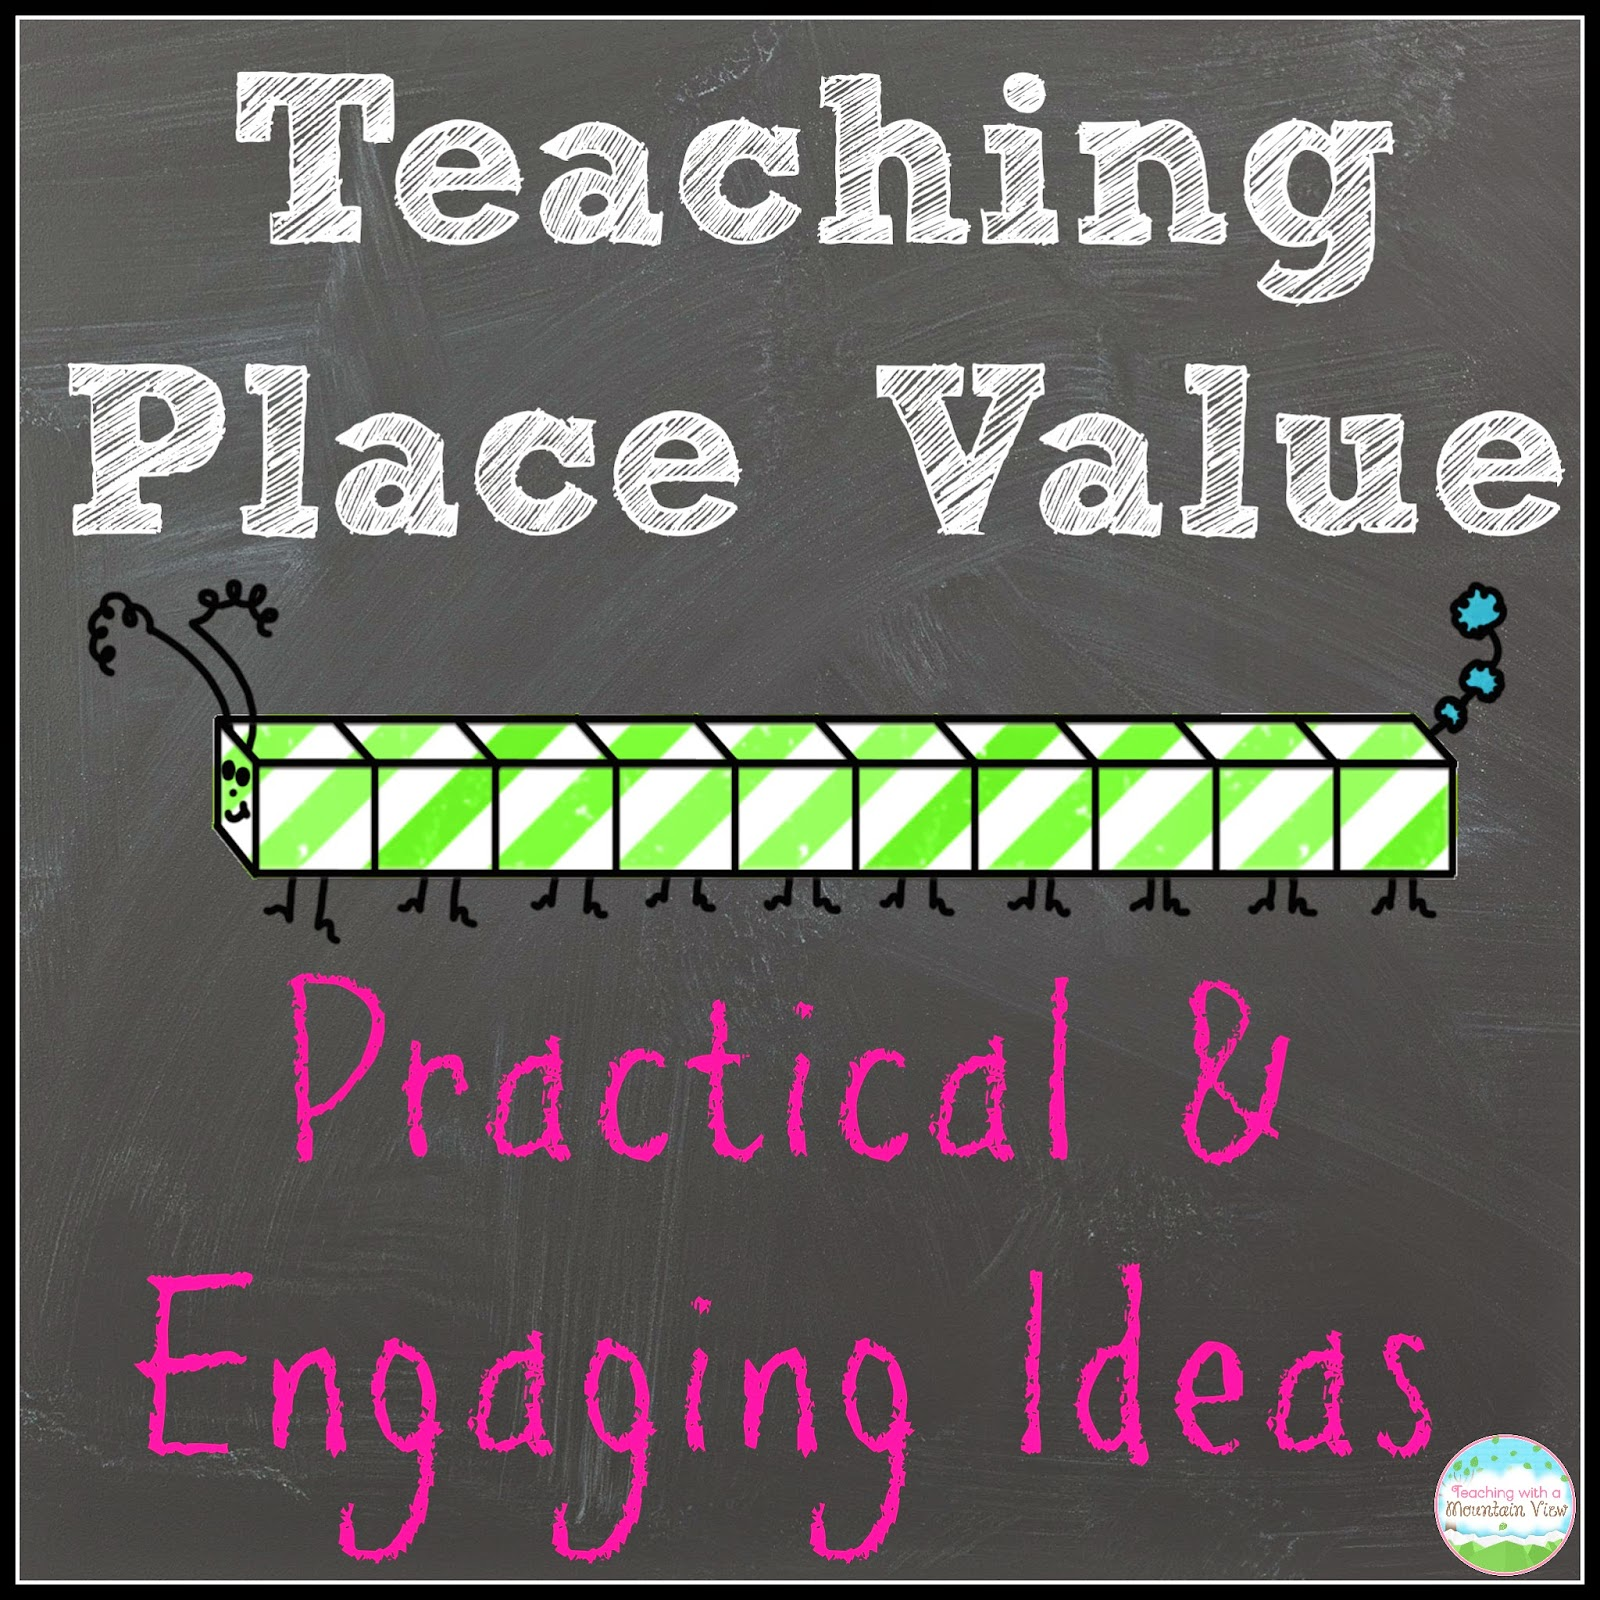 how to teach values education in For teaching and learning units designed to assist schools and teachers to integrate values within key learning areas of the school curriculum see building values across the whole school for activities to support schools in integrating values in curricular and extracurricular contexts to develop student responsibility, social skills.